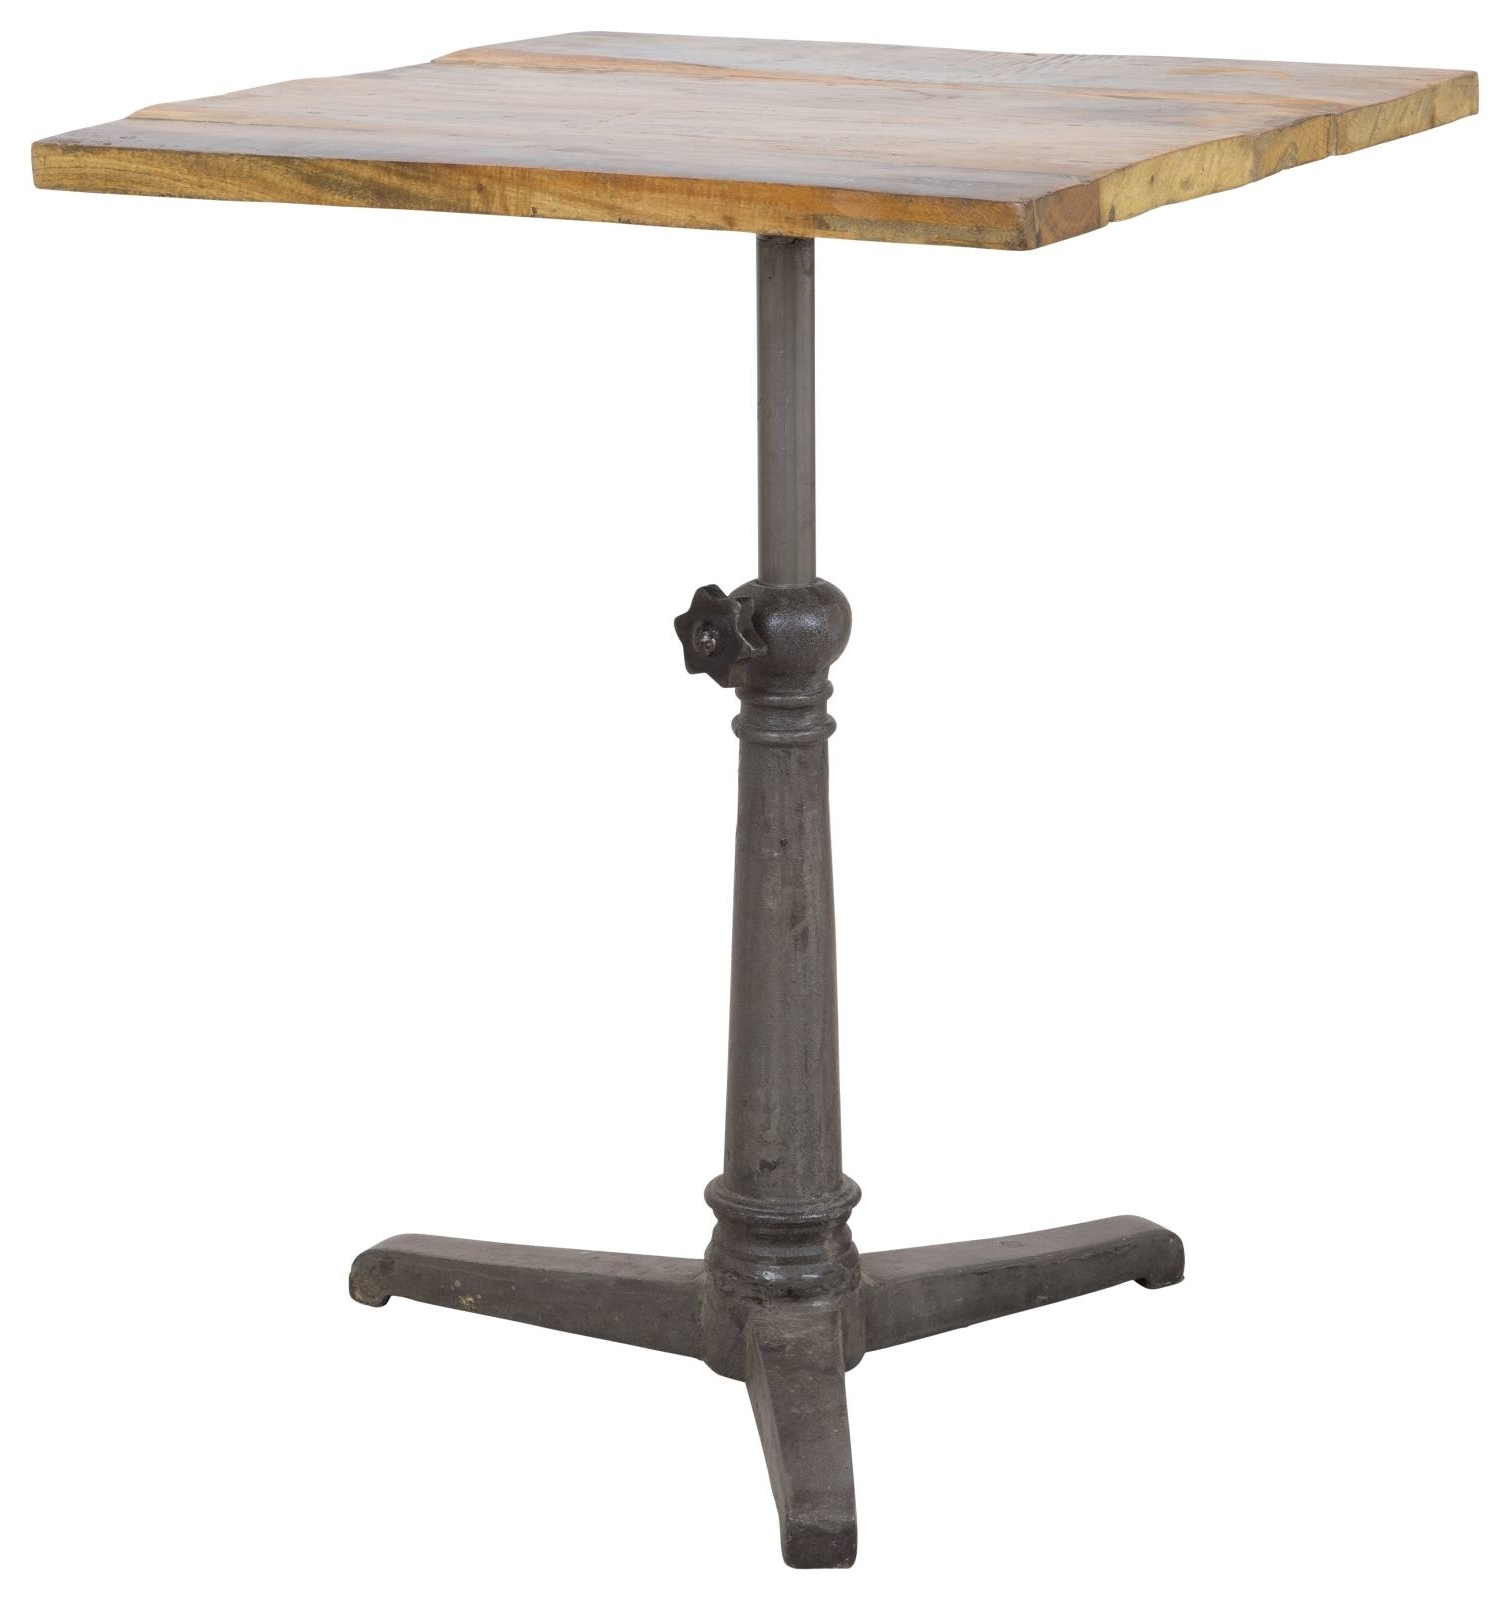 Widely Used Naveen Coffee Tables Pertaining To Small Naveen Reclaimed Wood & Iron Café Table – Rustic – Dining (View 13 of 20)